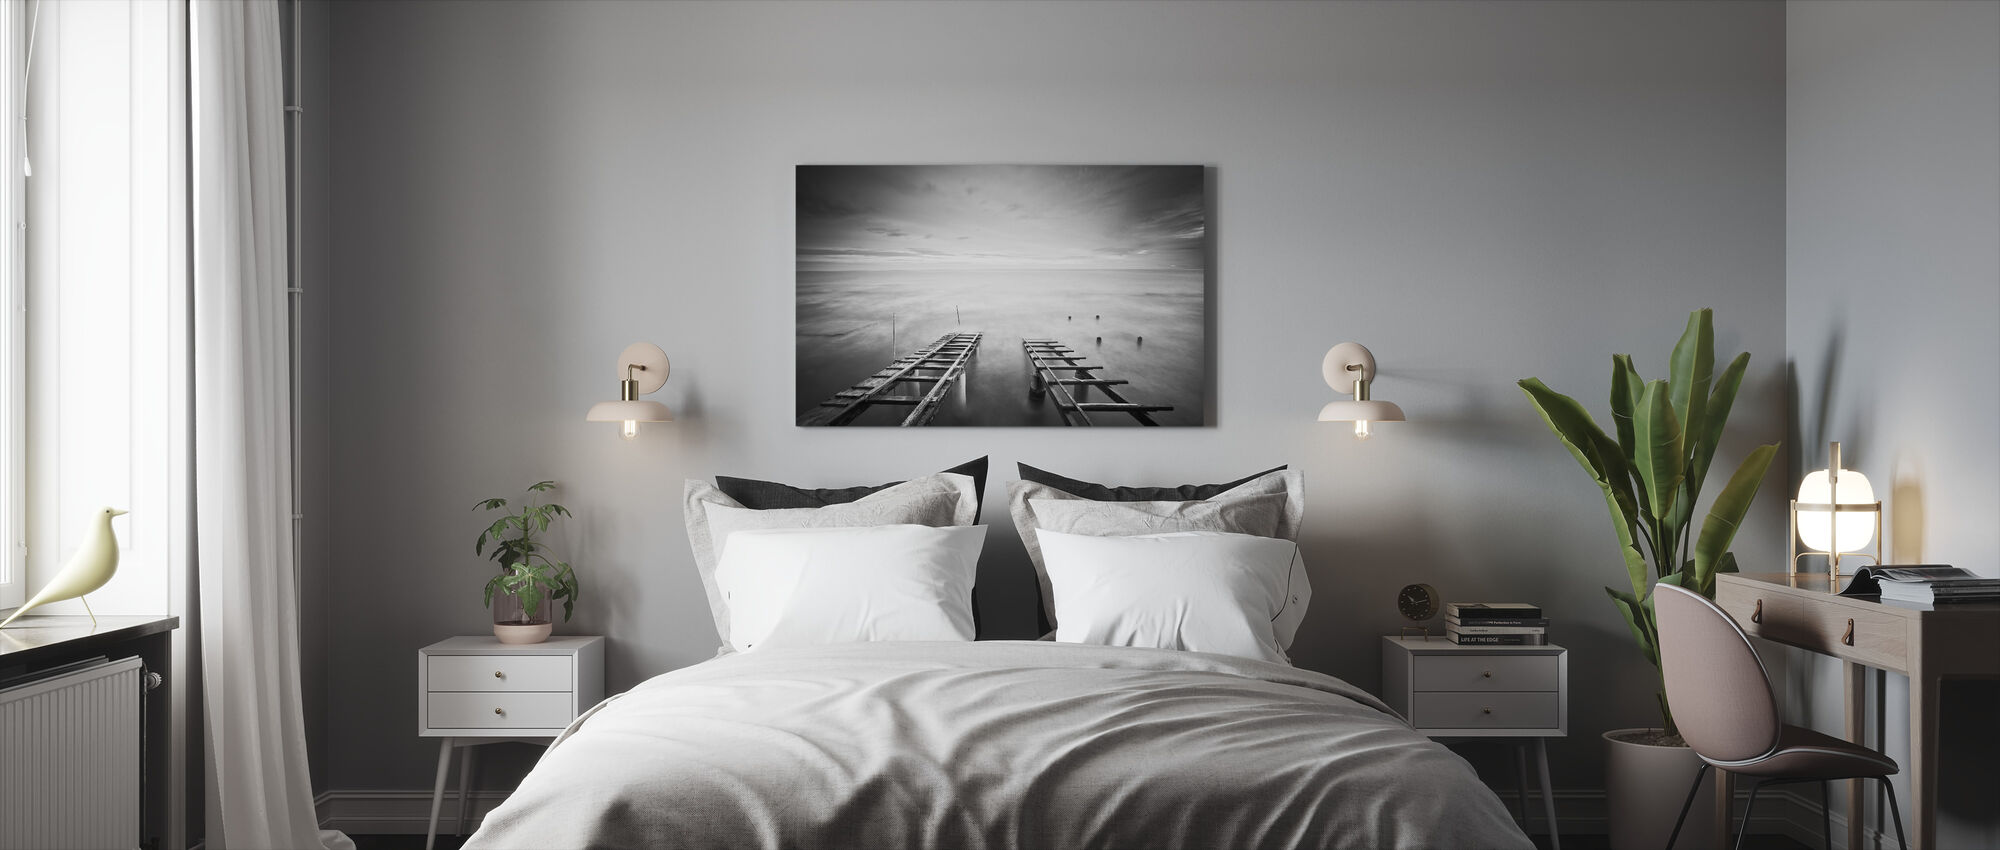 To the Infinity - Canvas print - Bedroom